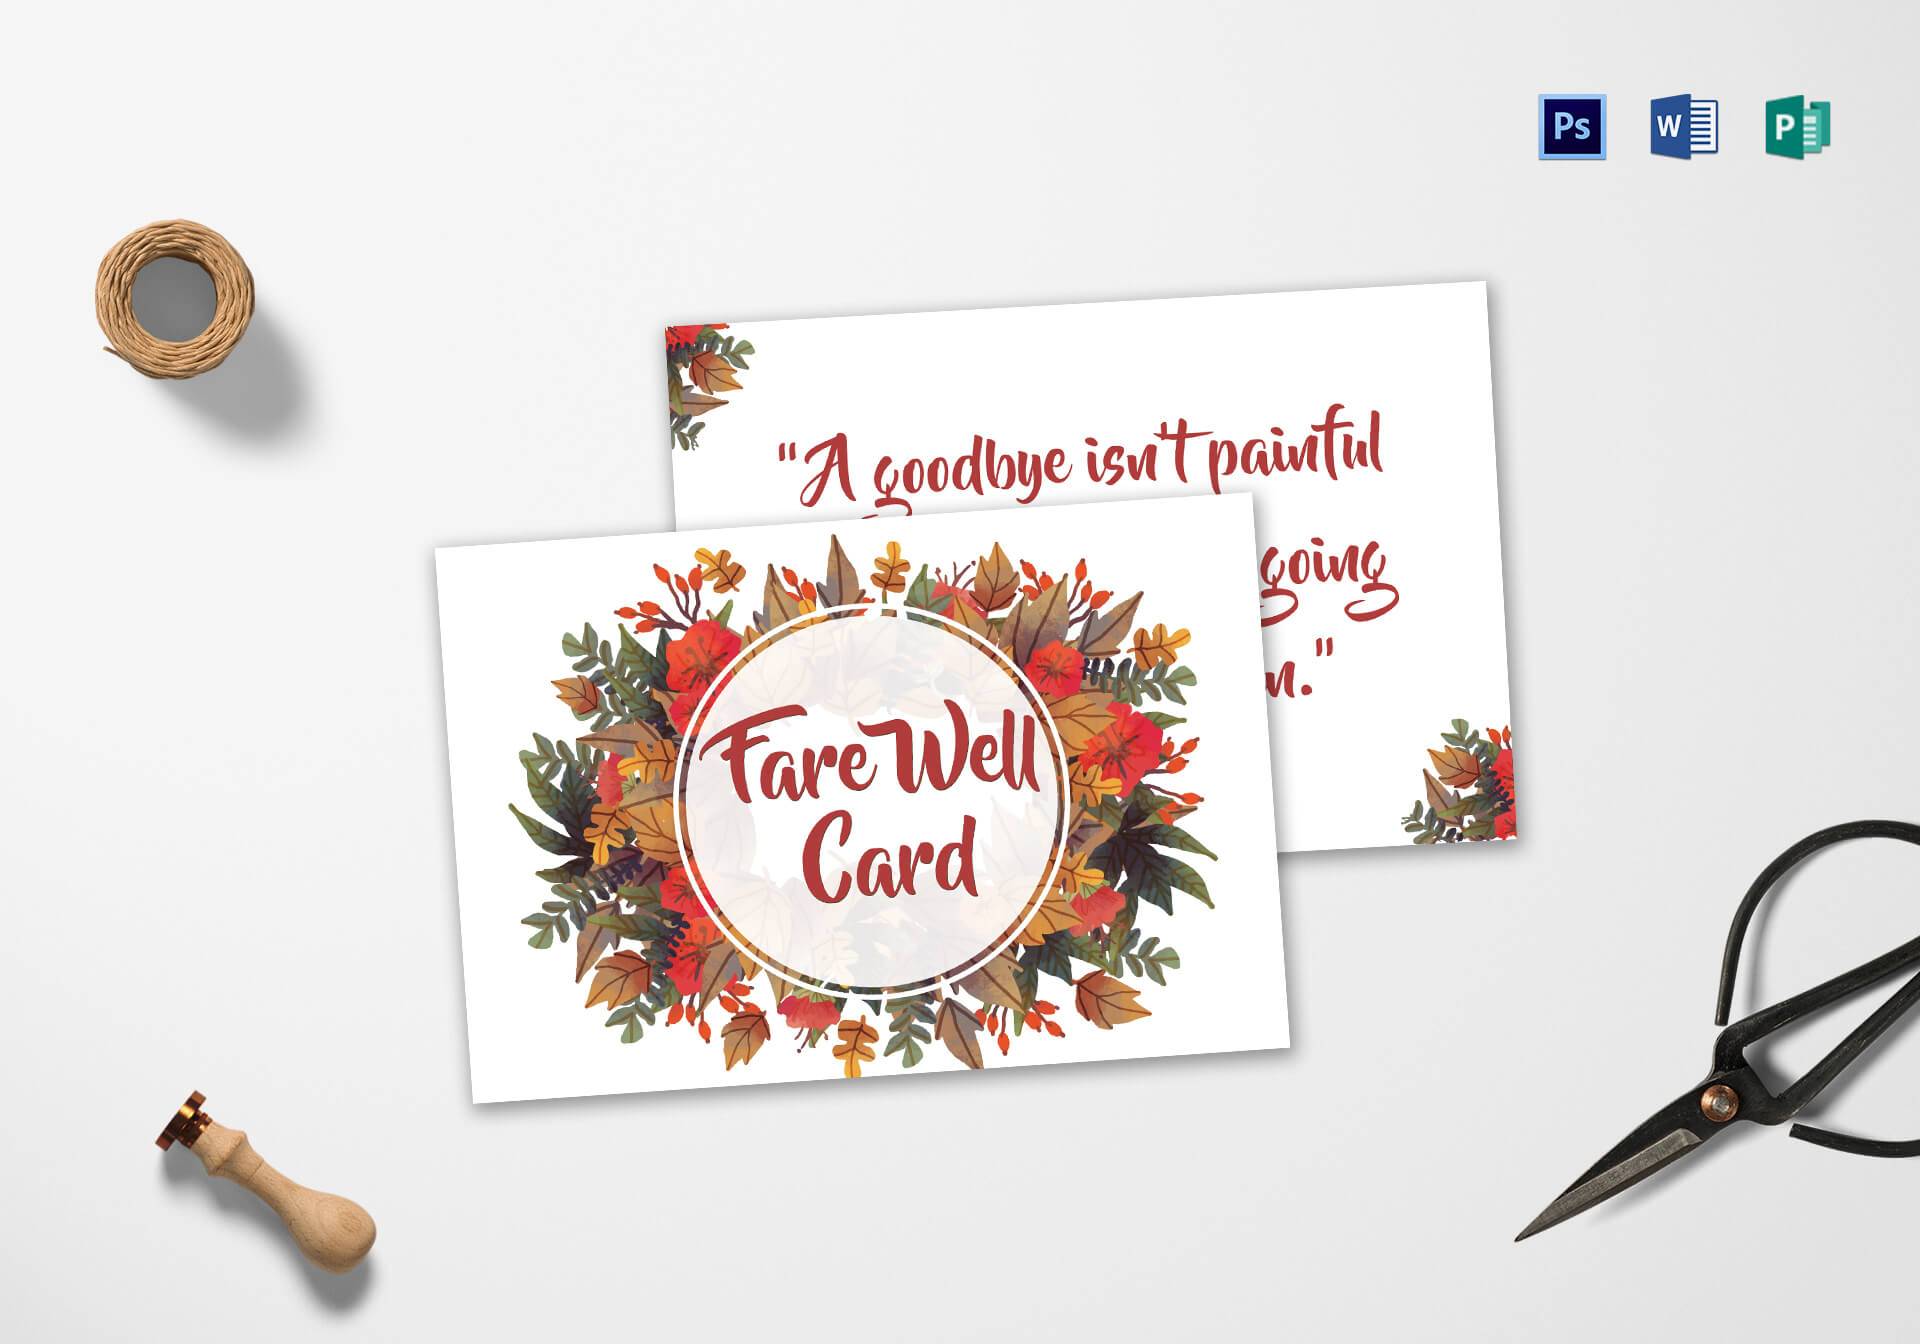 Farewell Card Template Word - Cumed Pertaining To Farewell Card Template Word